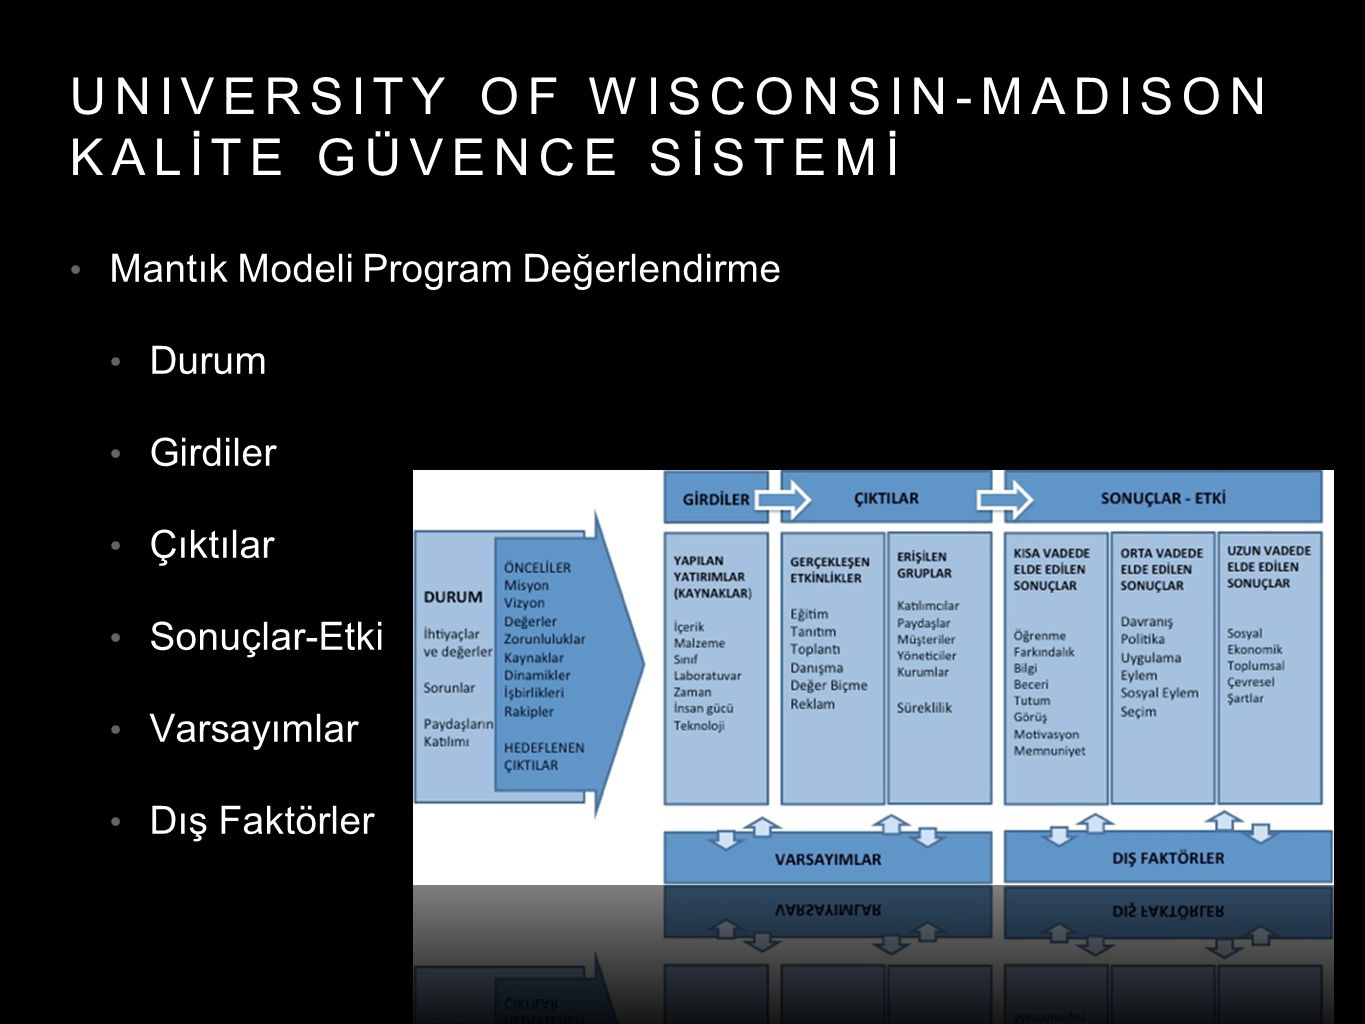 UNIVERSITY OF WISCONSIN-MADISON KALİTE GÜVENCE SİSTEMİ